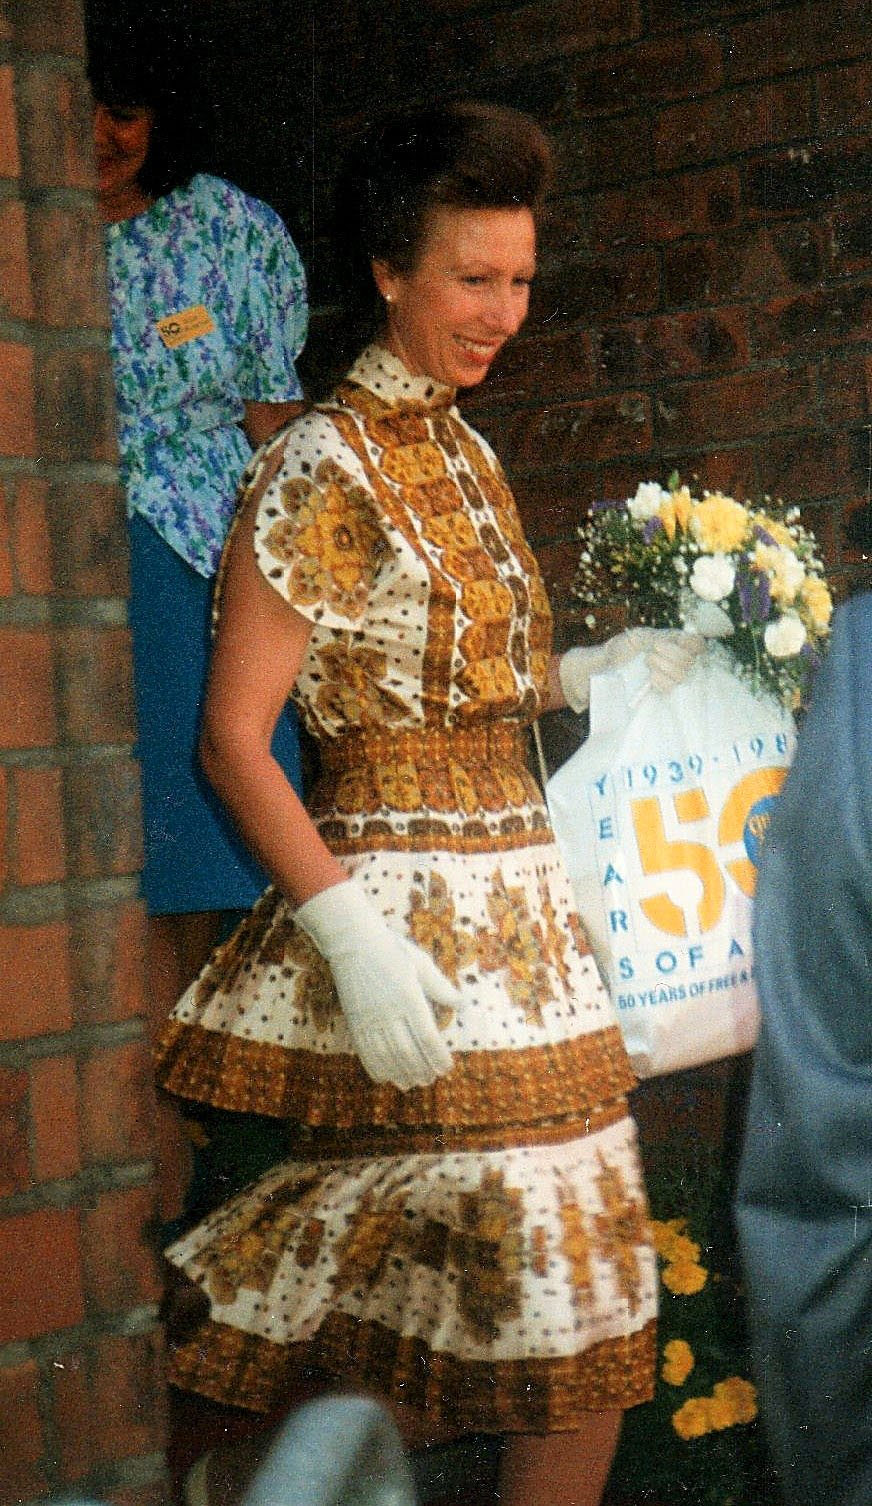 Anne, Princess Royal, visits Wakefield's Citizens Advice Bureau in 1989. She left holding a plastic bag commemorating 50 years of free and impartial advice by the organisation. Photographer: Paul Ratcliffe